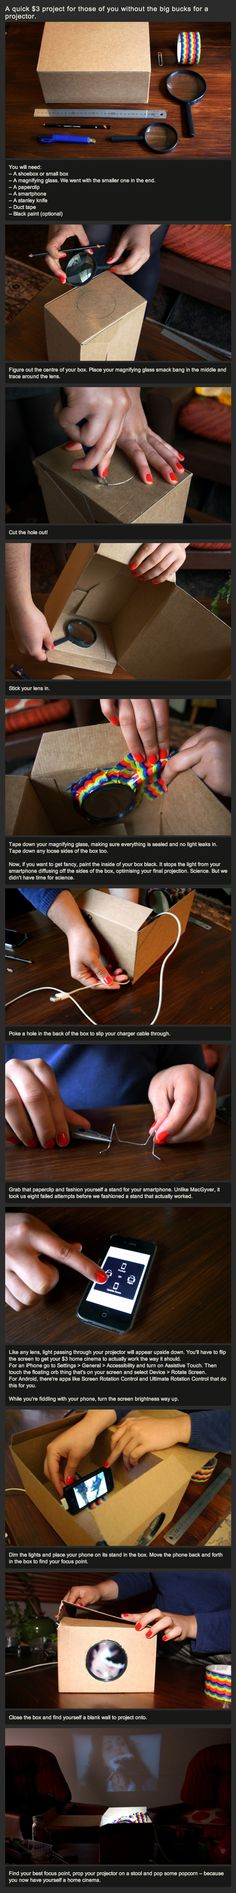 Funny pictures about How to make your own smartphone projector. Oh, and cool pics about How to make your own smartphone projector. Also, How to make your own smartphone projector.